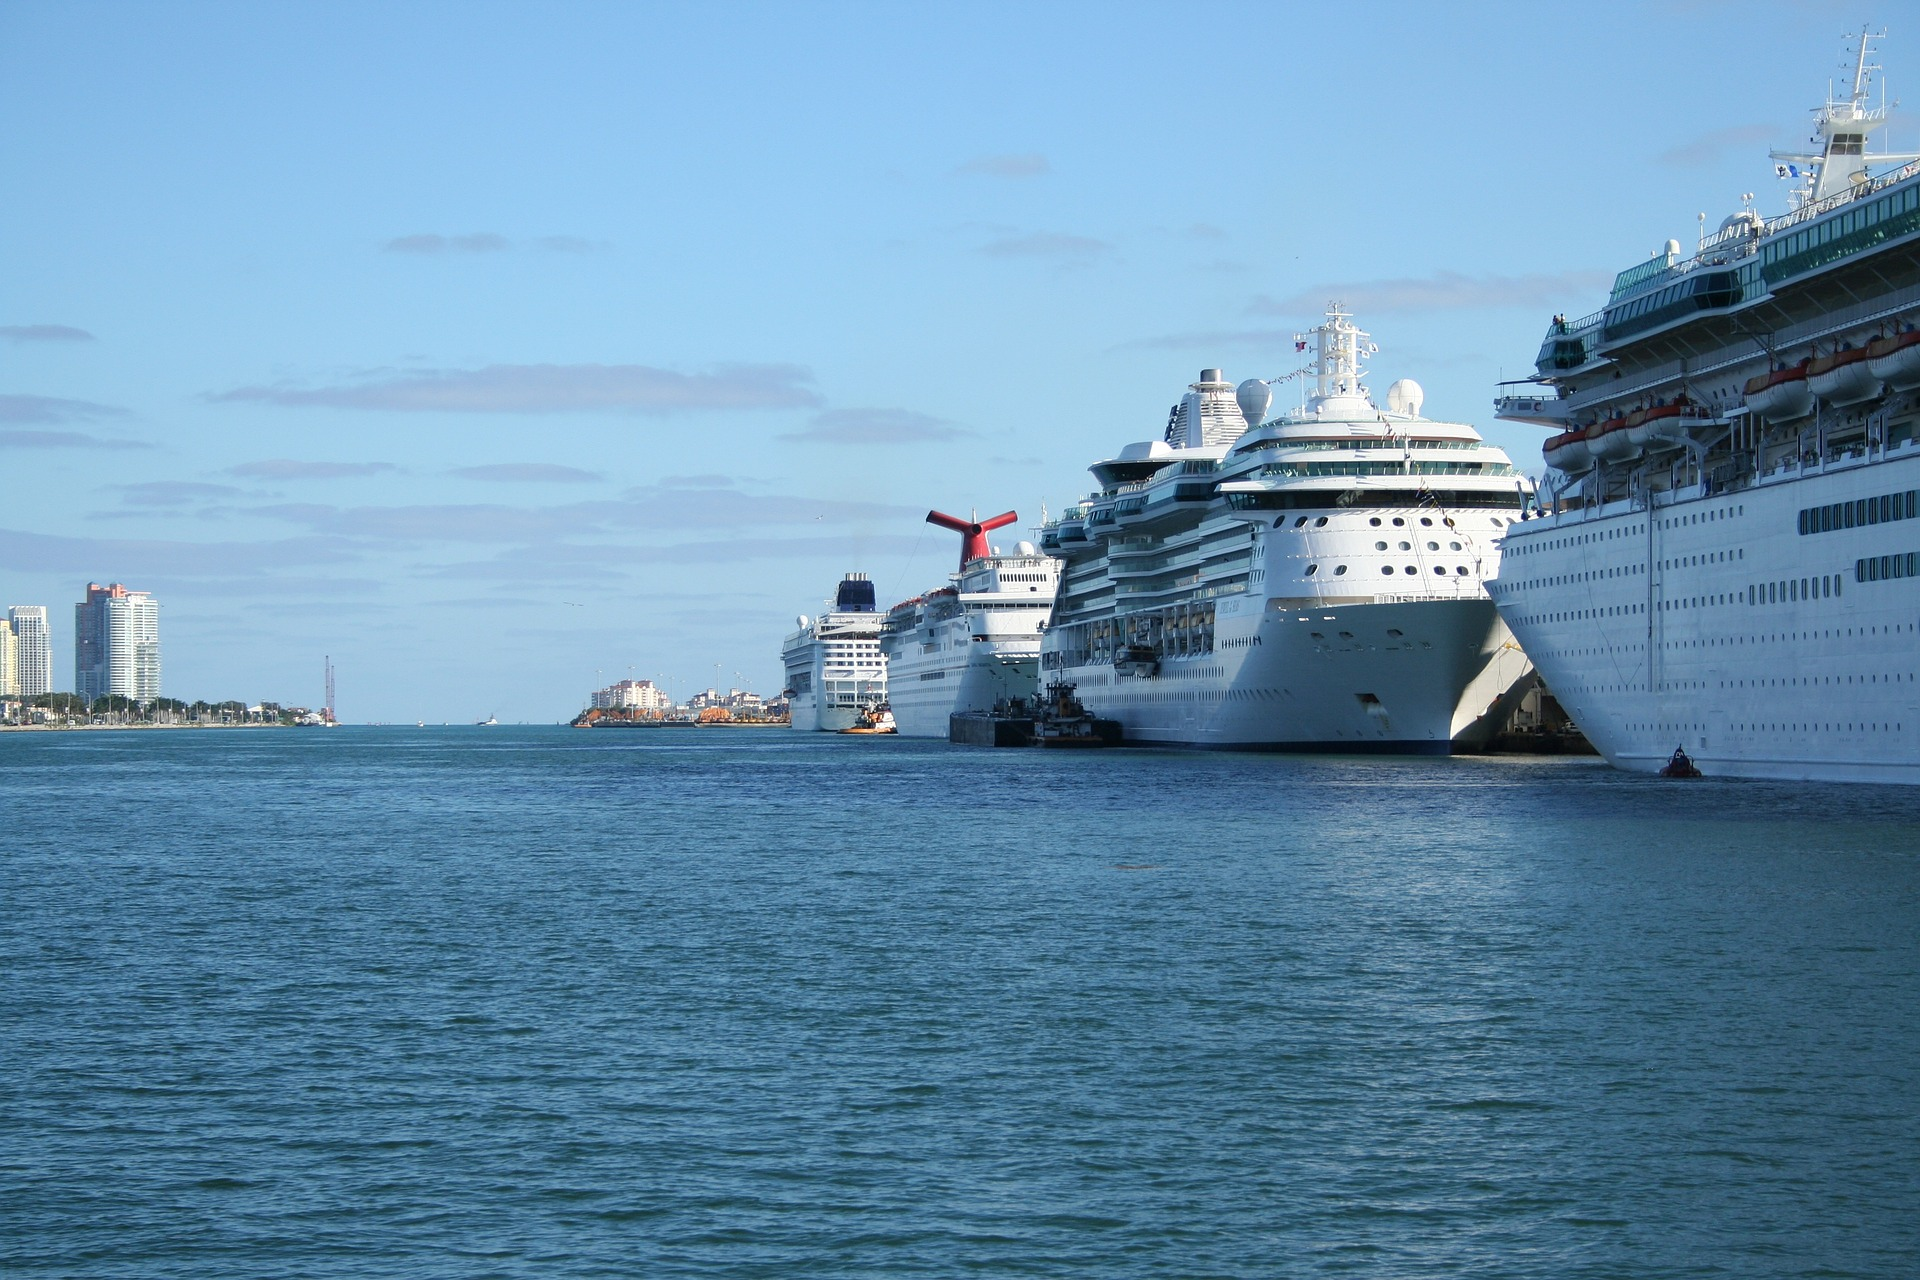 Ships lined up at PortMiami